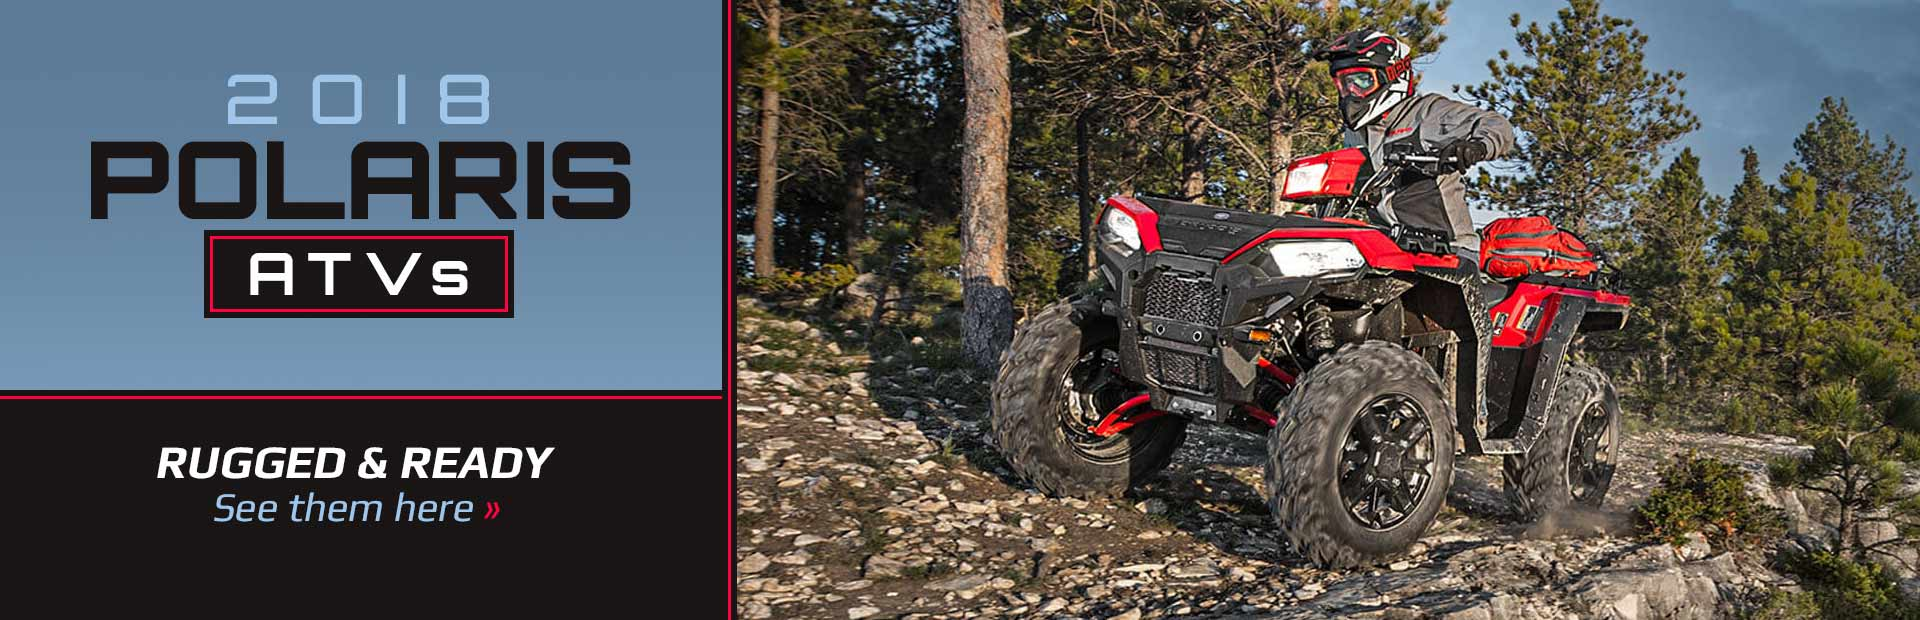 2018 Polaris ATVs: Click here to view the models.